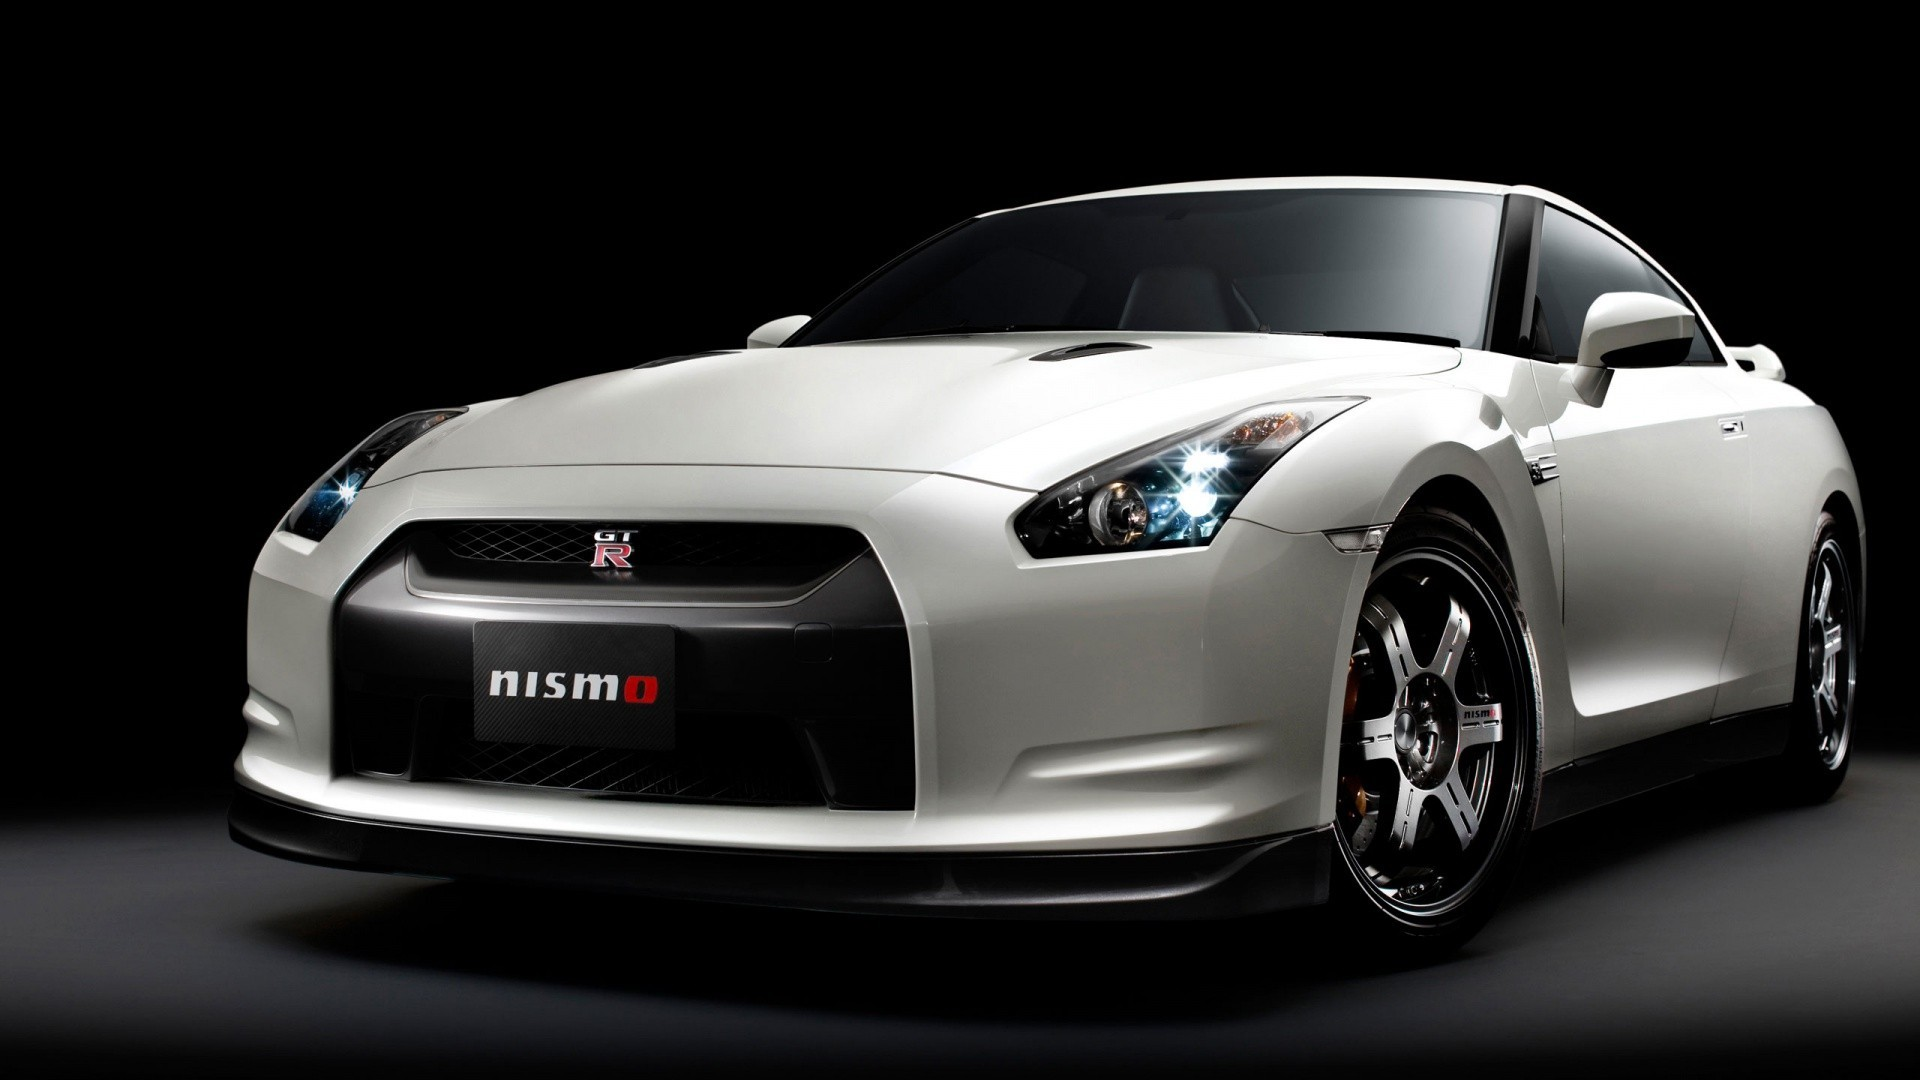 cars Sports Nissan nismo